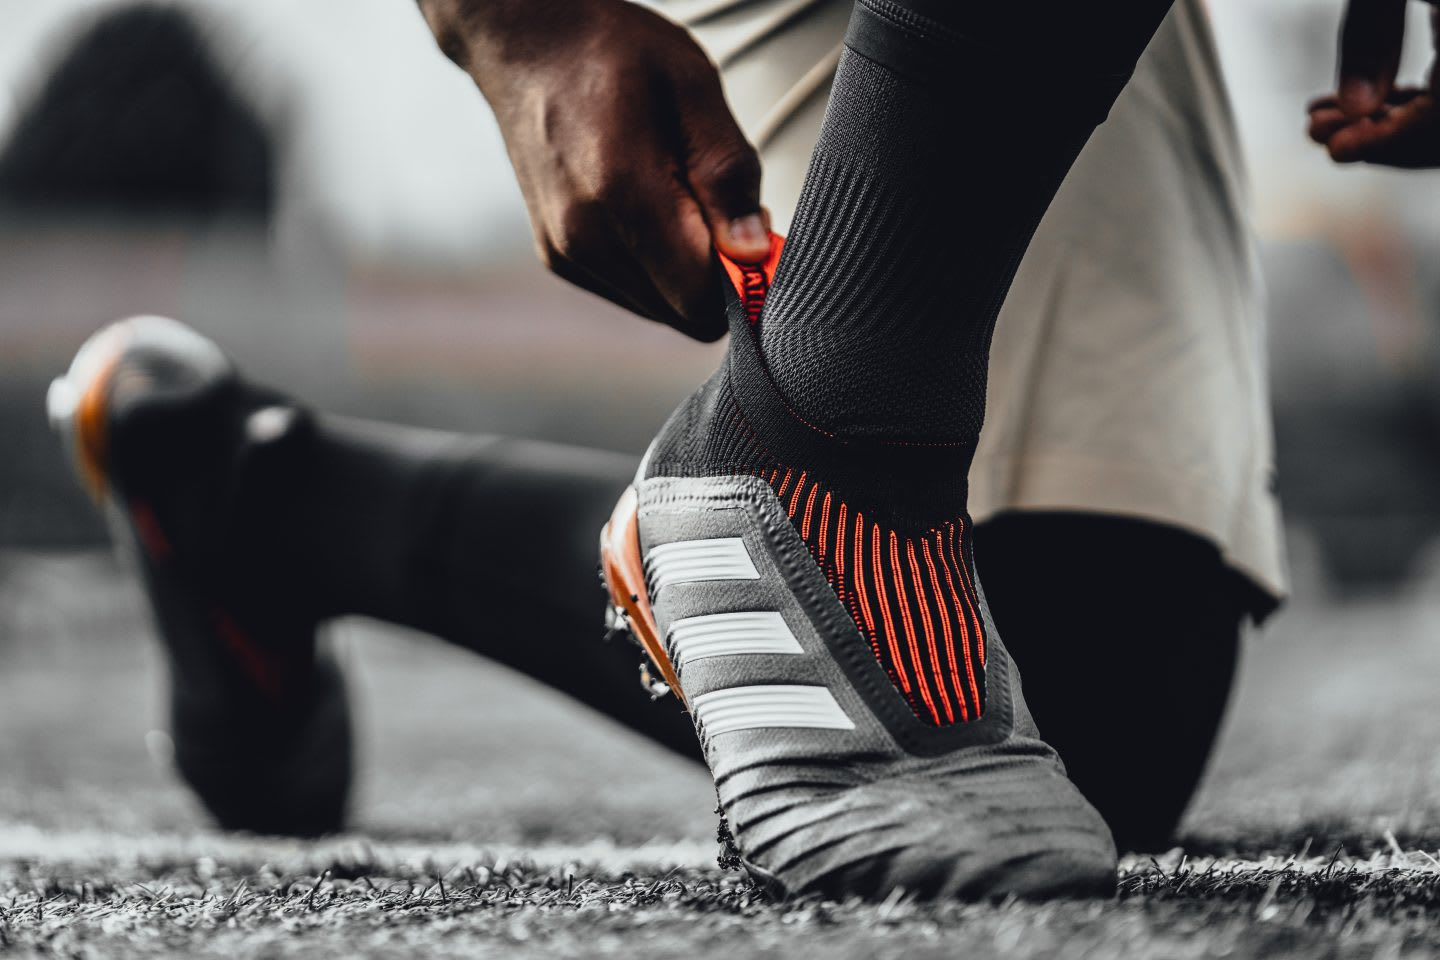 A person is kneeling on the ground, putting on the new black and white Predator boot with red details. Icon,; Legend; adidas; football; boot; soccer; Innovation; GamePlan A